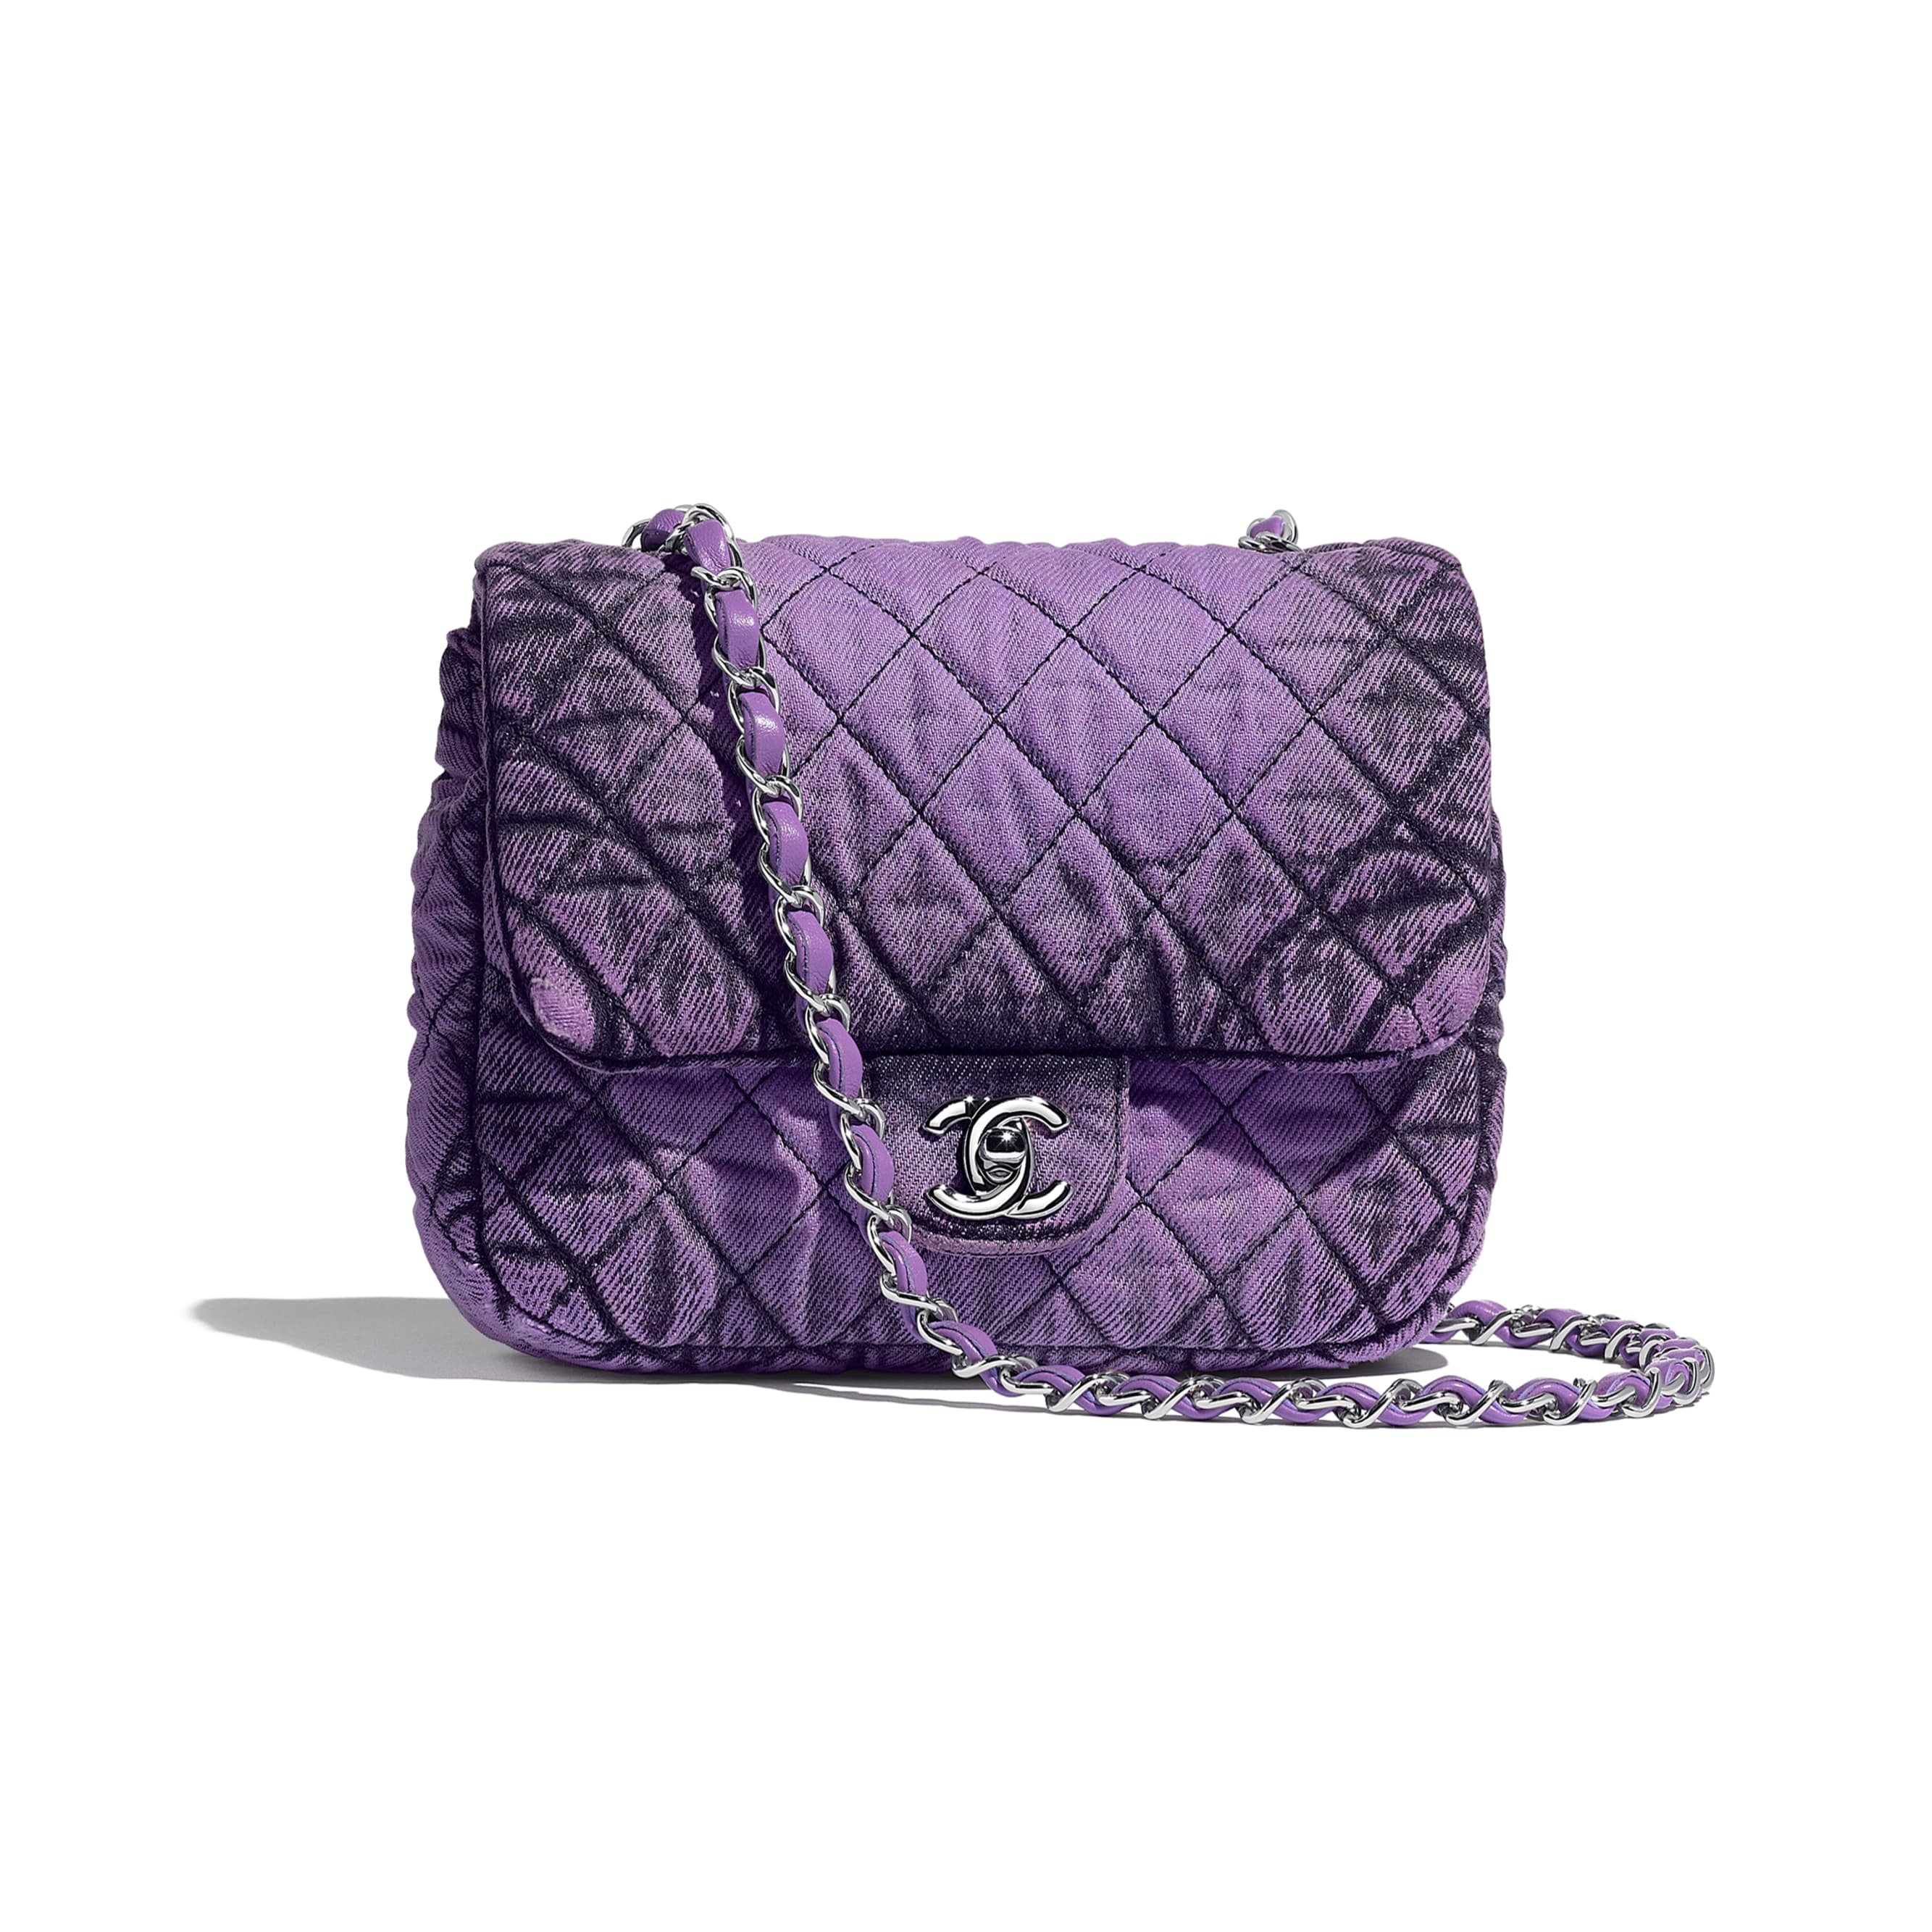 Small Flap Bag - Purple & Black - Denim & Silver-Tone Metal - Default view - see standard sized version